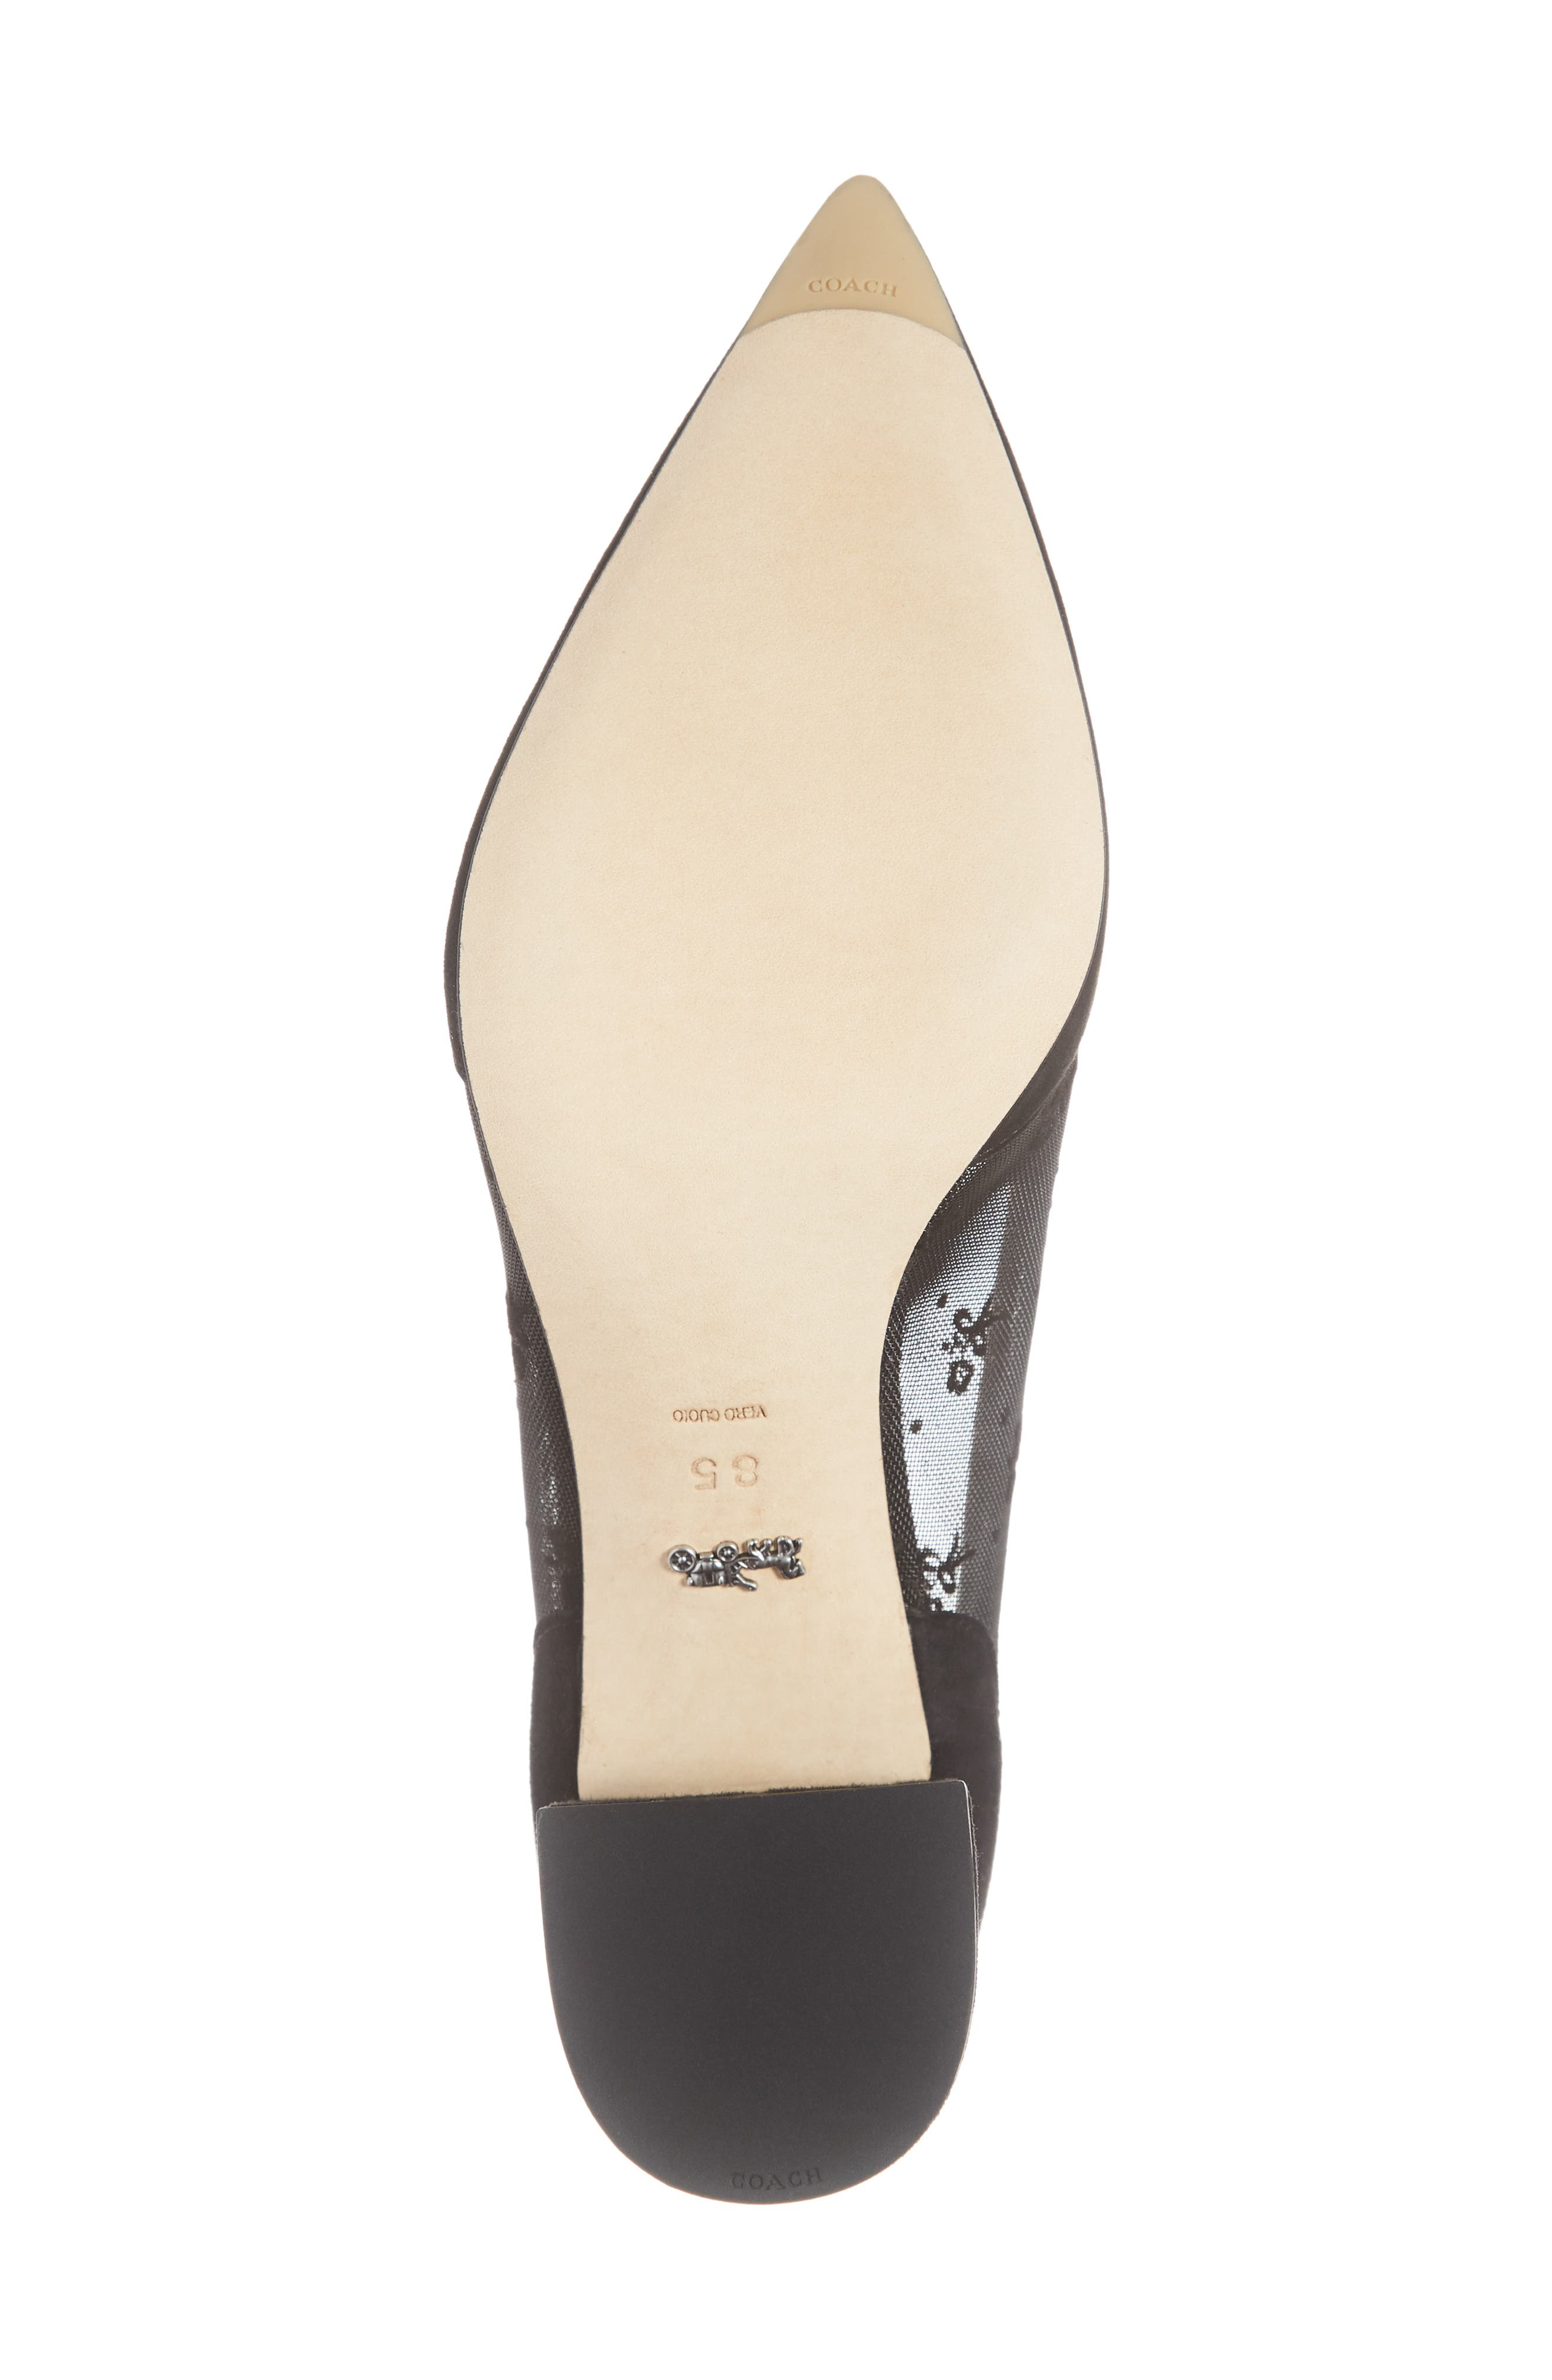 COACH, Whitley Scallop Pointy Toe Pump, Alternate thumbnail 6, color, BLACK SUEDE